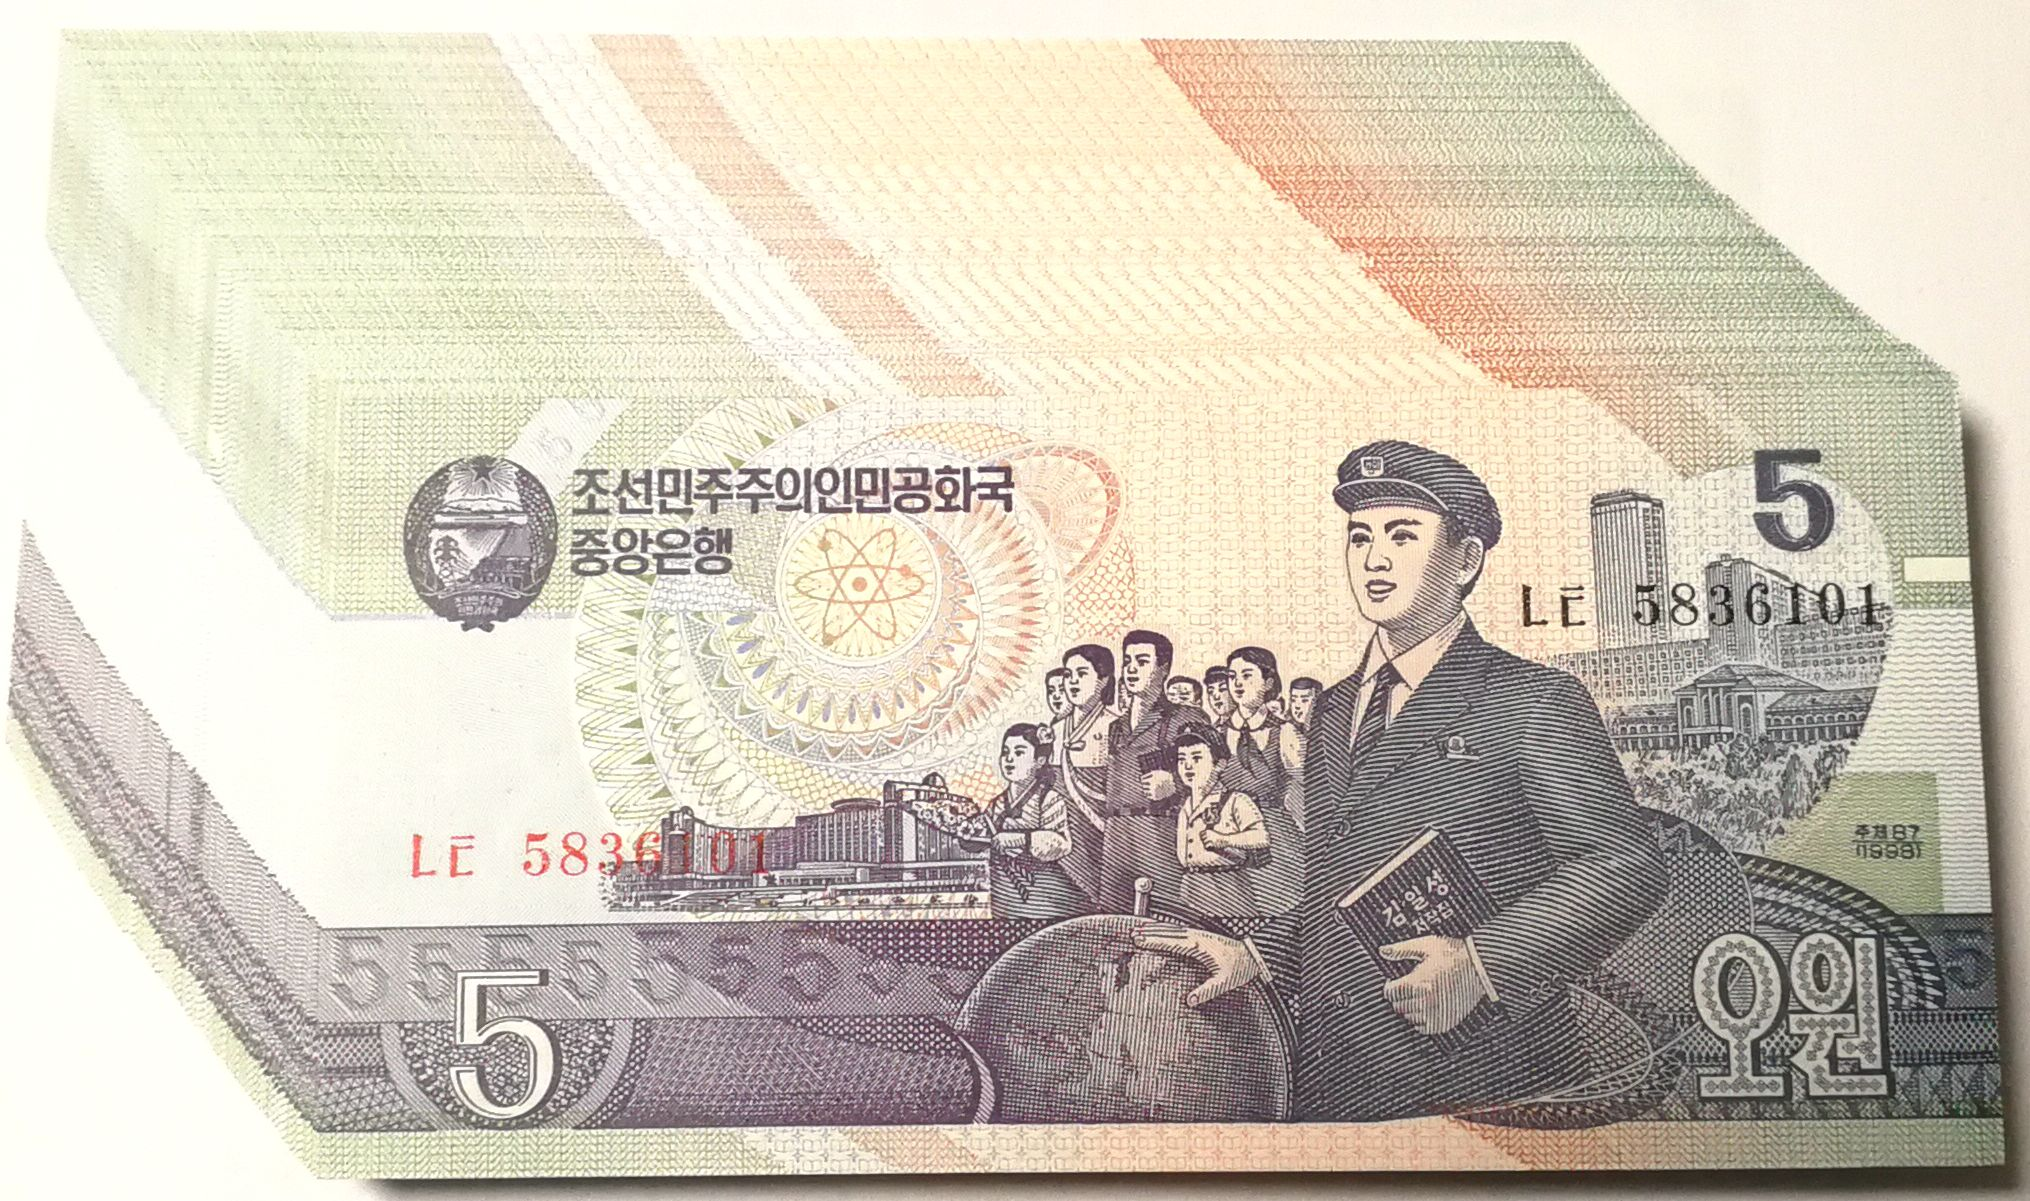 L1075, Bundle of 100 Pcs Paper Money, Korea 5 Won Banknotes, 1998 (P-40)